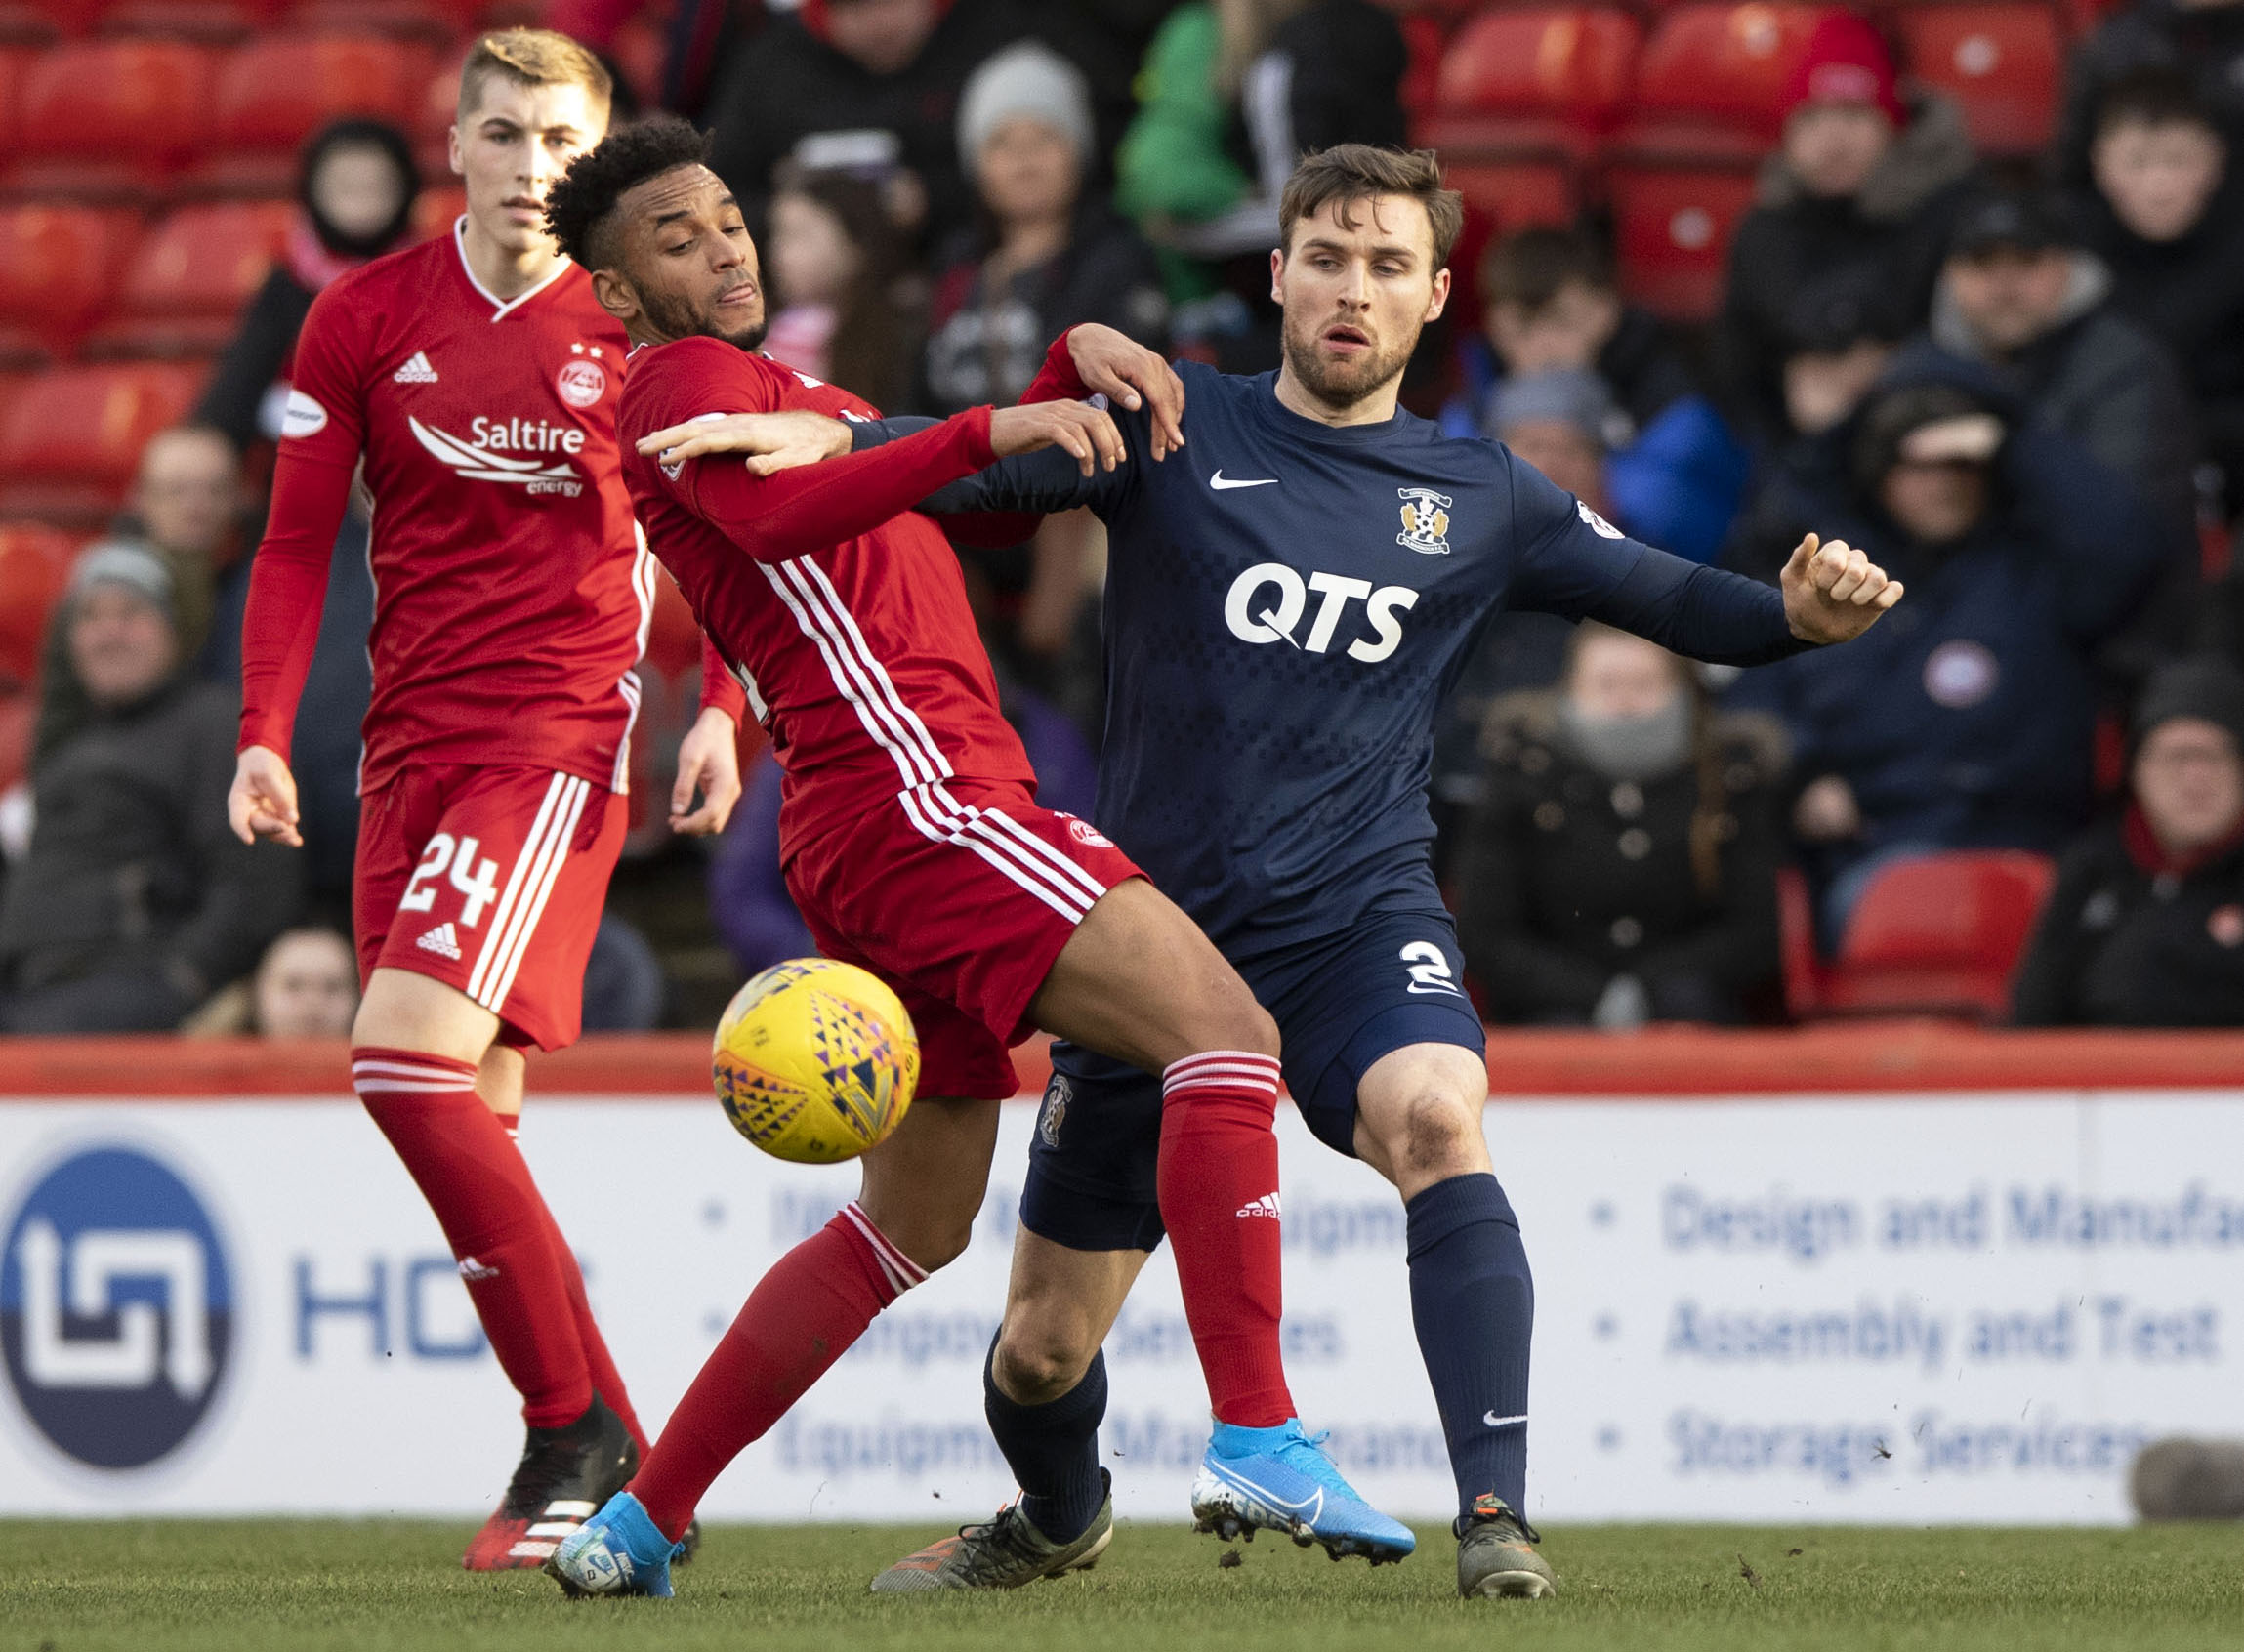 Dean Campbell looks on as Funso Ojo battles with Kilmarnock's Stephen O'Donnell.